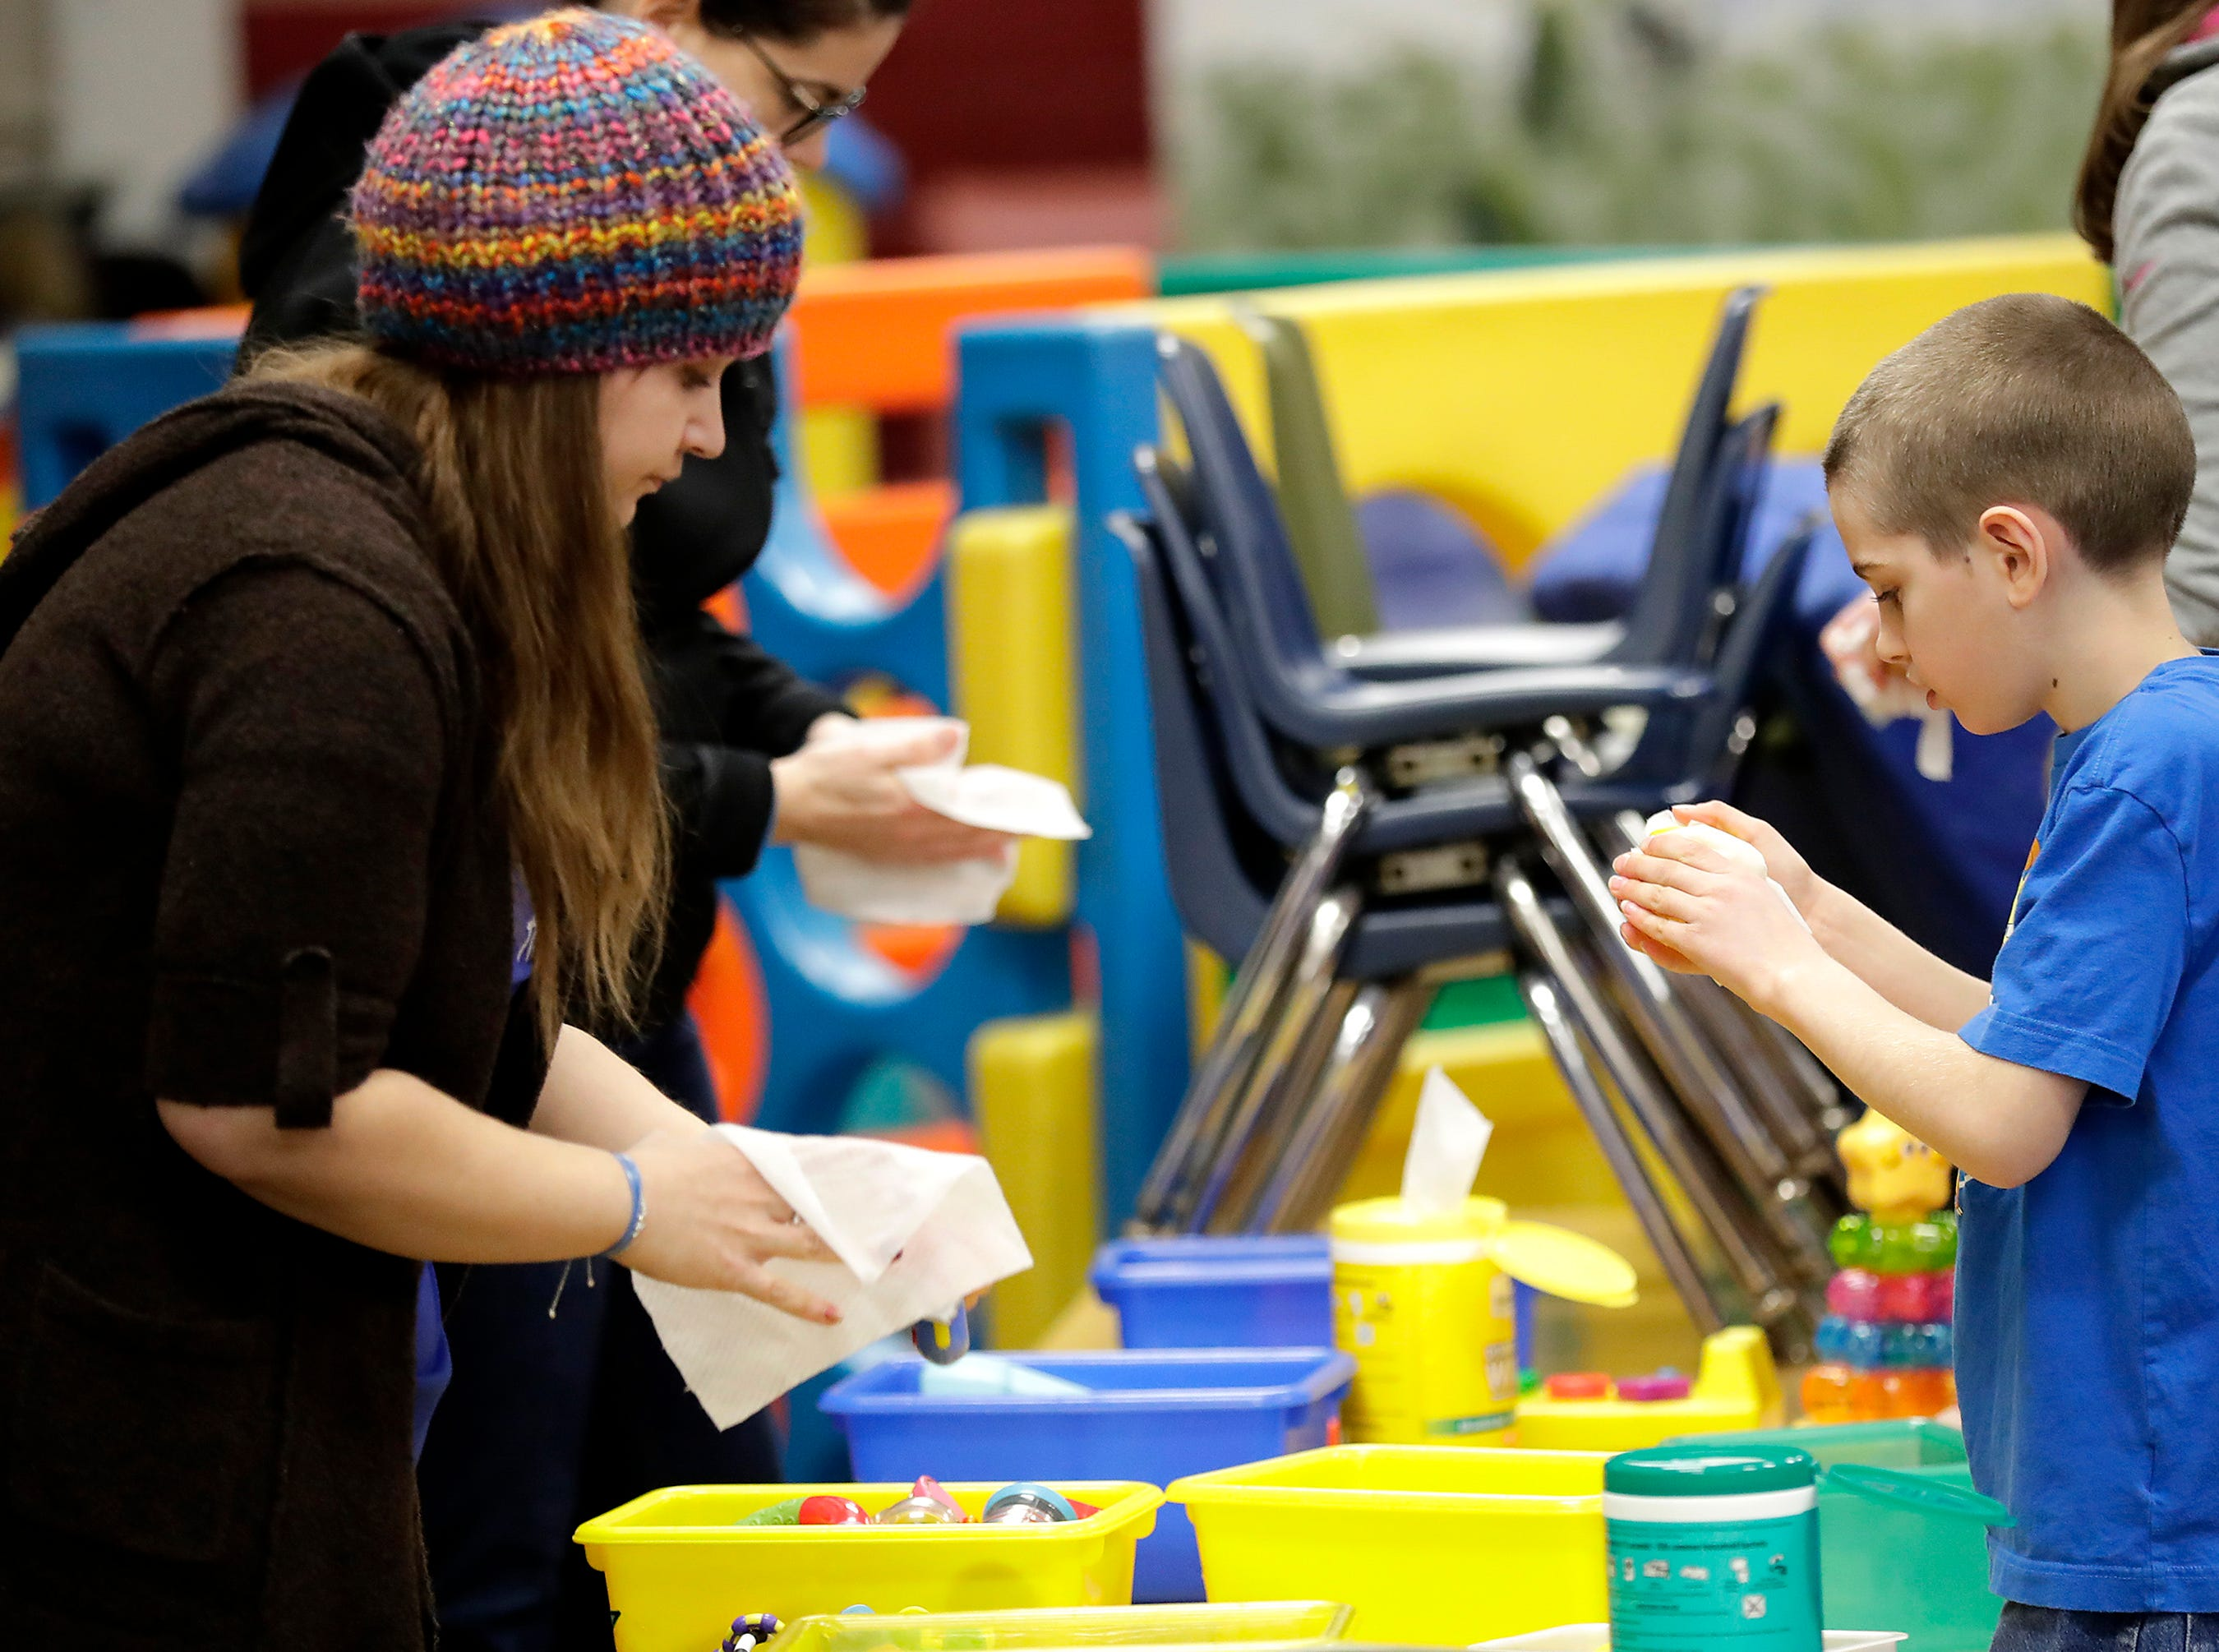 Amanda Hurray and Nolan Dassey volunteer for a shift of cleaning toys at B.A.B.E.S. Inc. Child Abuse Prevention Program during the first annual MLK Community Day of Service celebration on Monday, January 21, 2019, at Appleton East High School in Appleton, Wis.